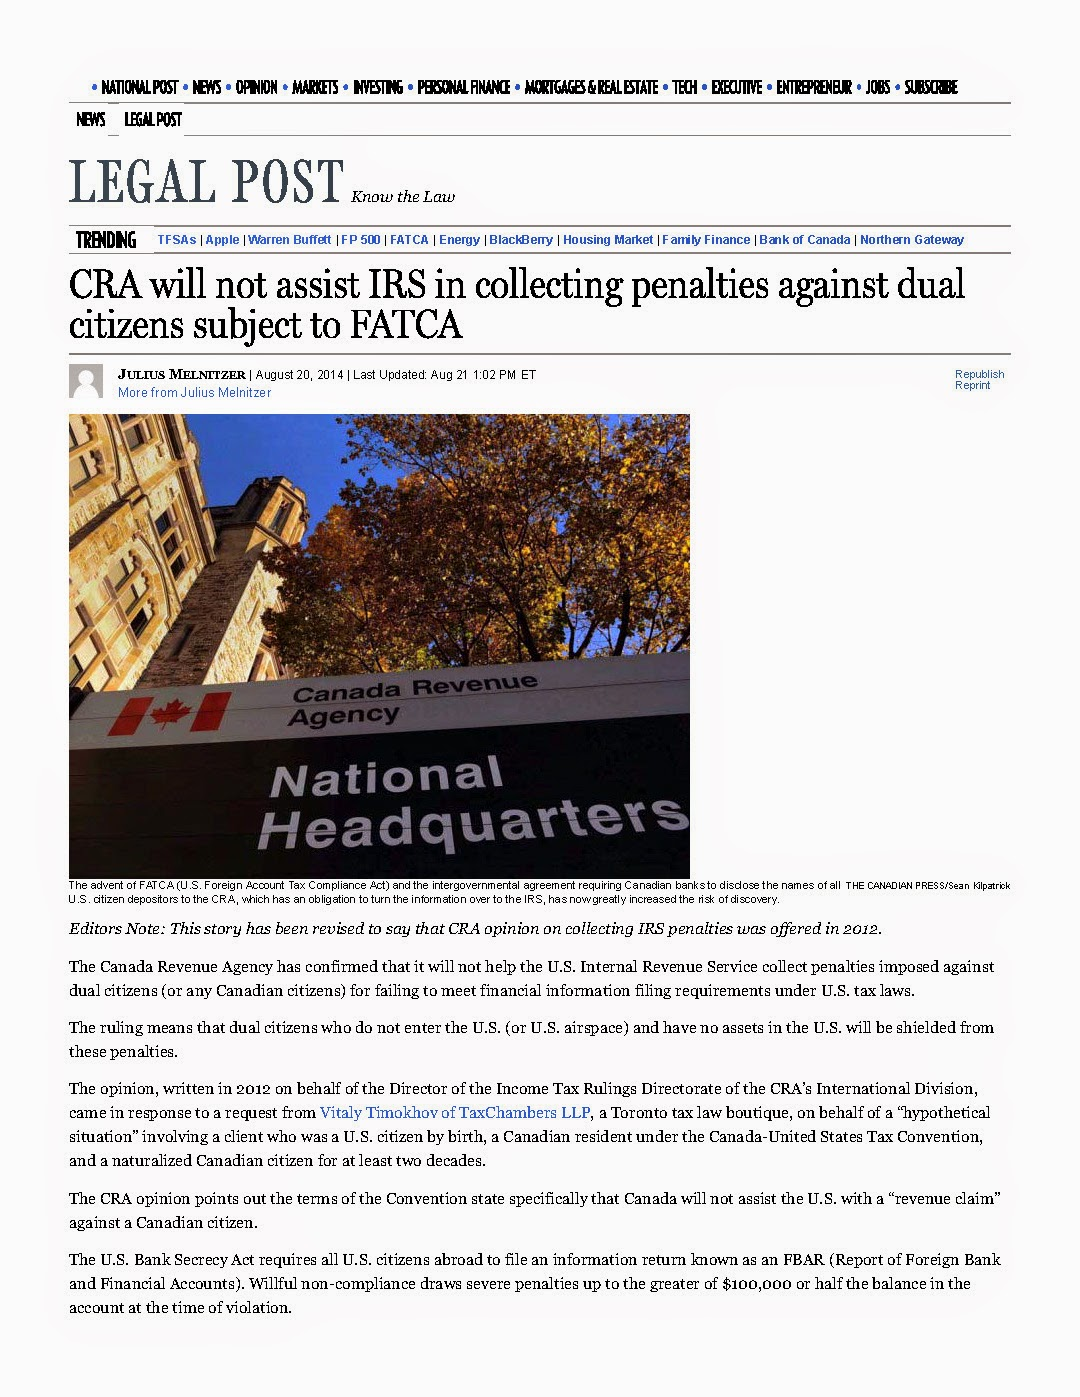 http://www.taxchambers.ca/wp-content/uploads/2014/08/CRA-will-not-assist-IRS-in-collecting-penalties-against-dual-citizens-subject-to-FATCA-_-Financial-Post.pdf